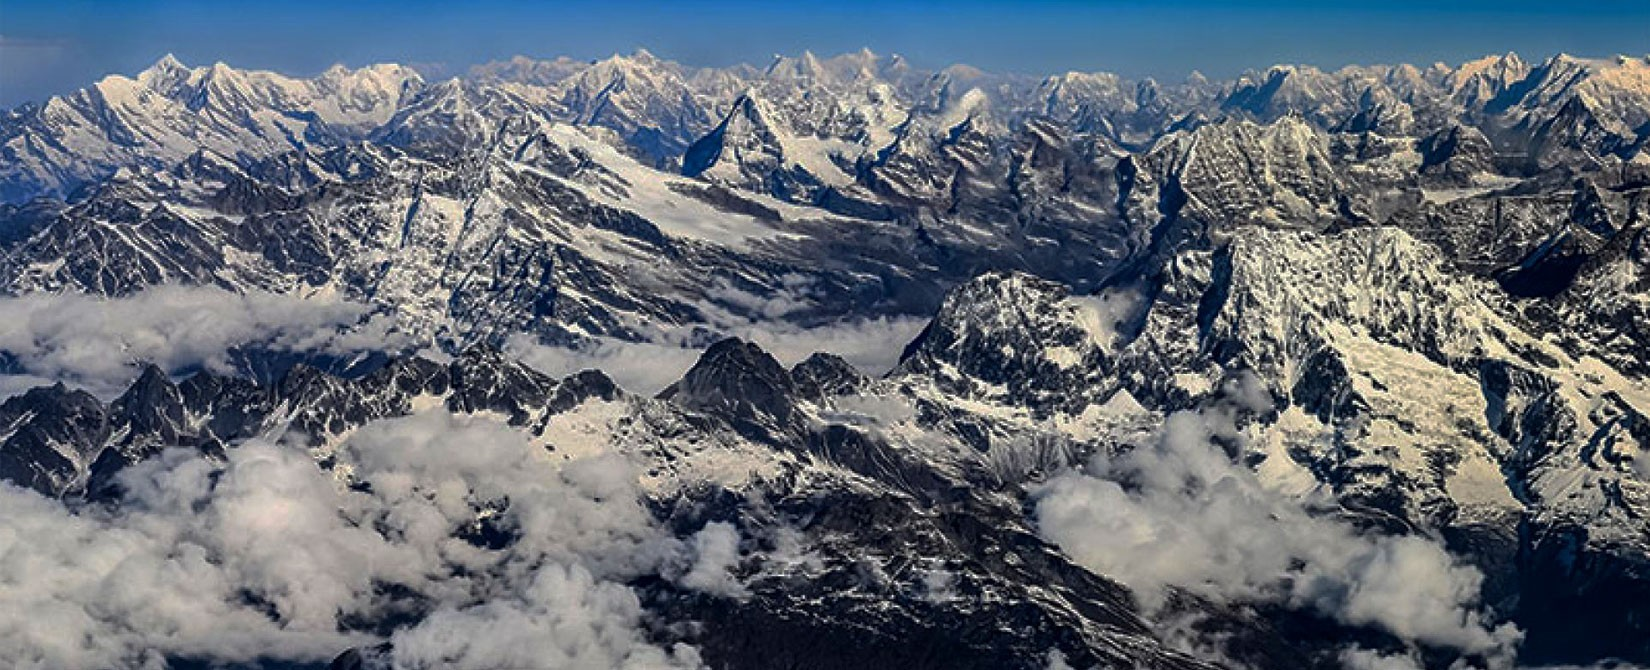 Panaromic View of Everest